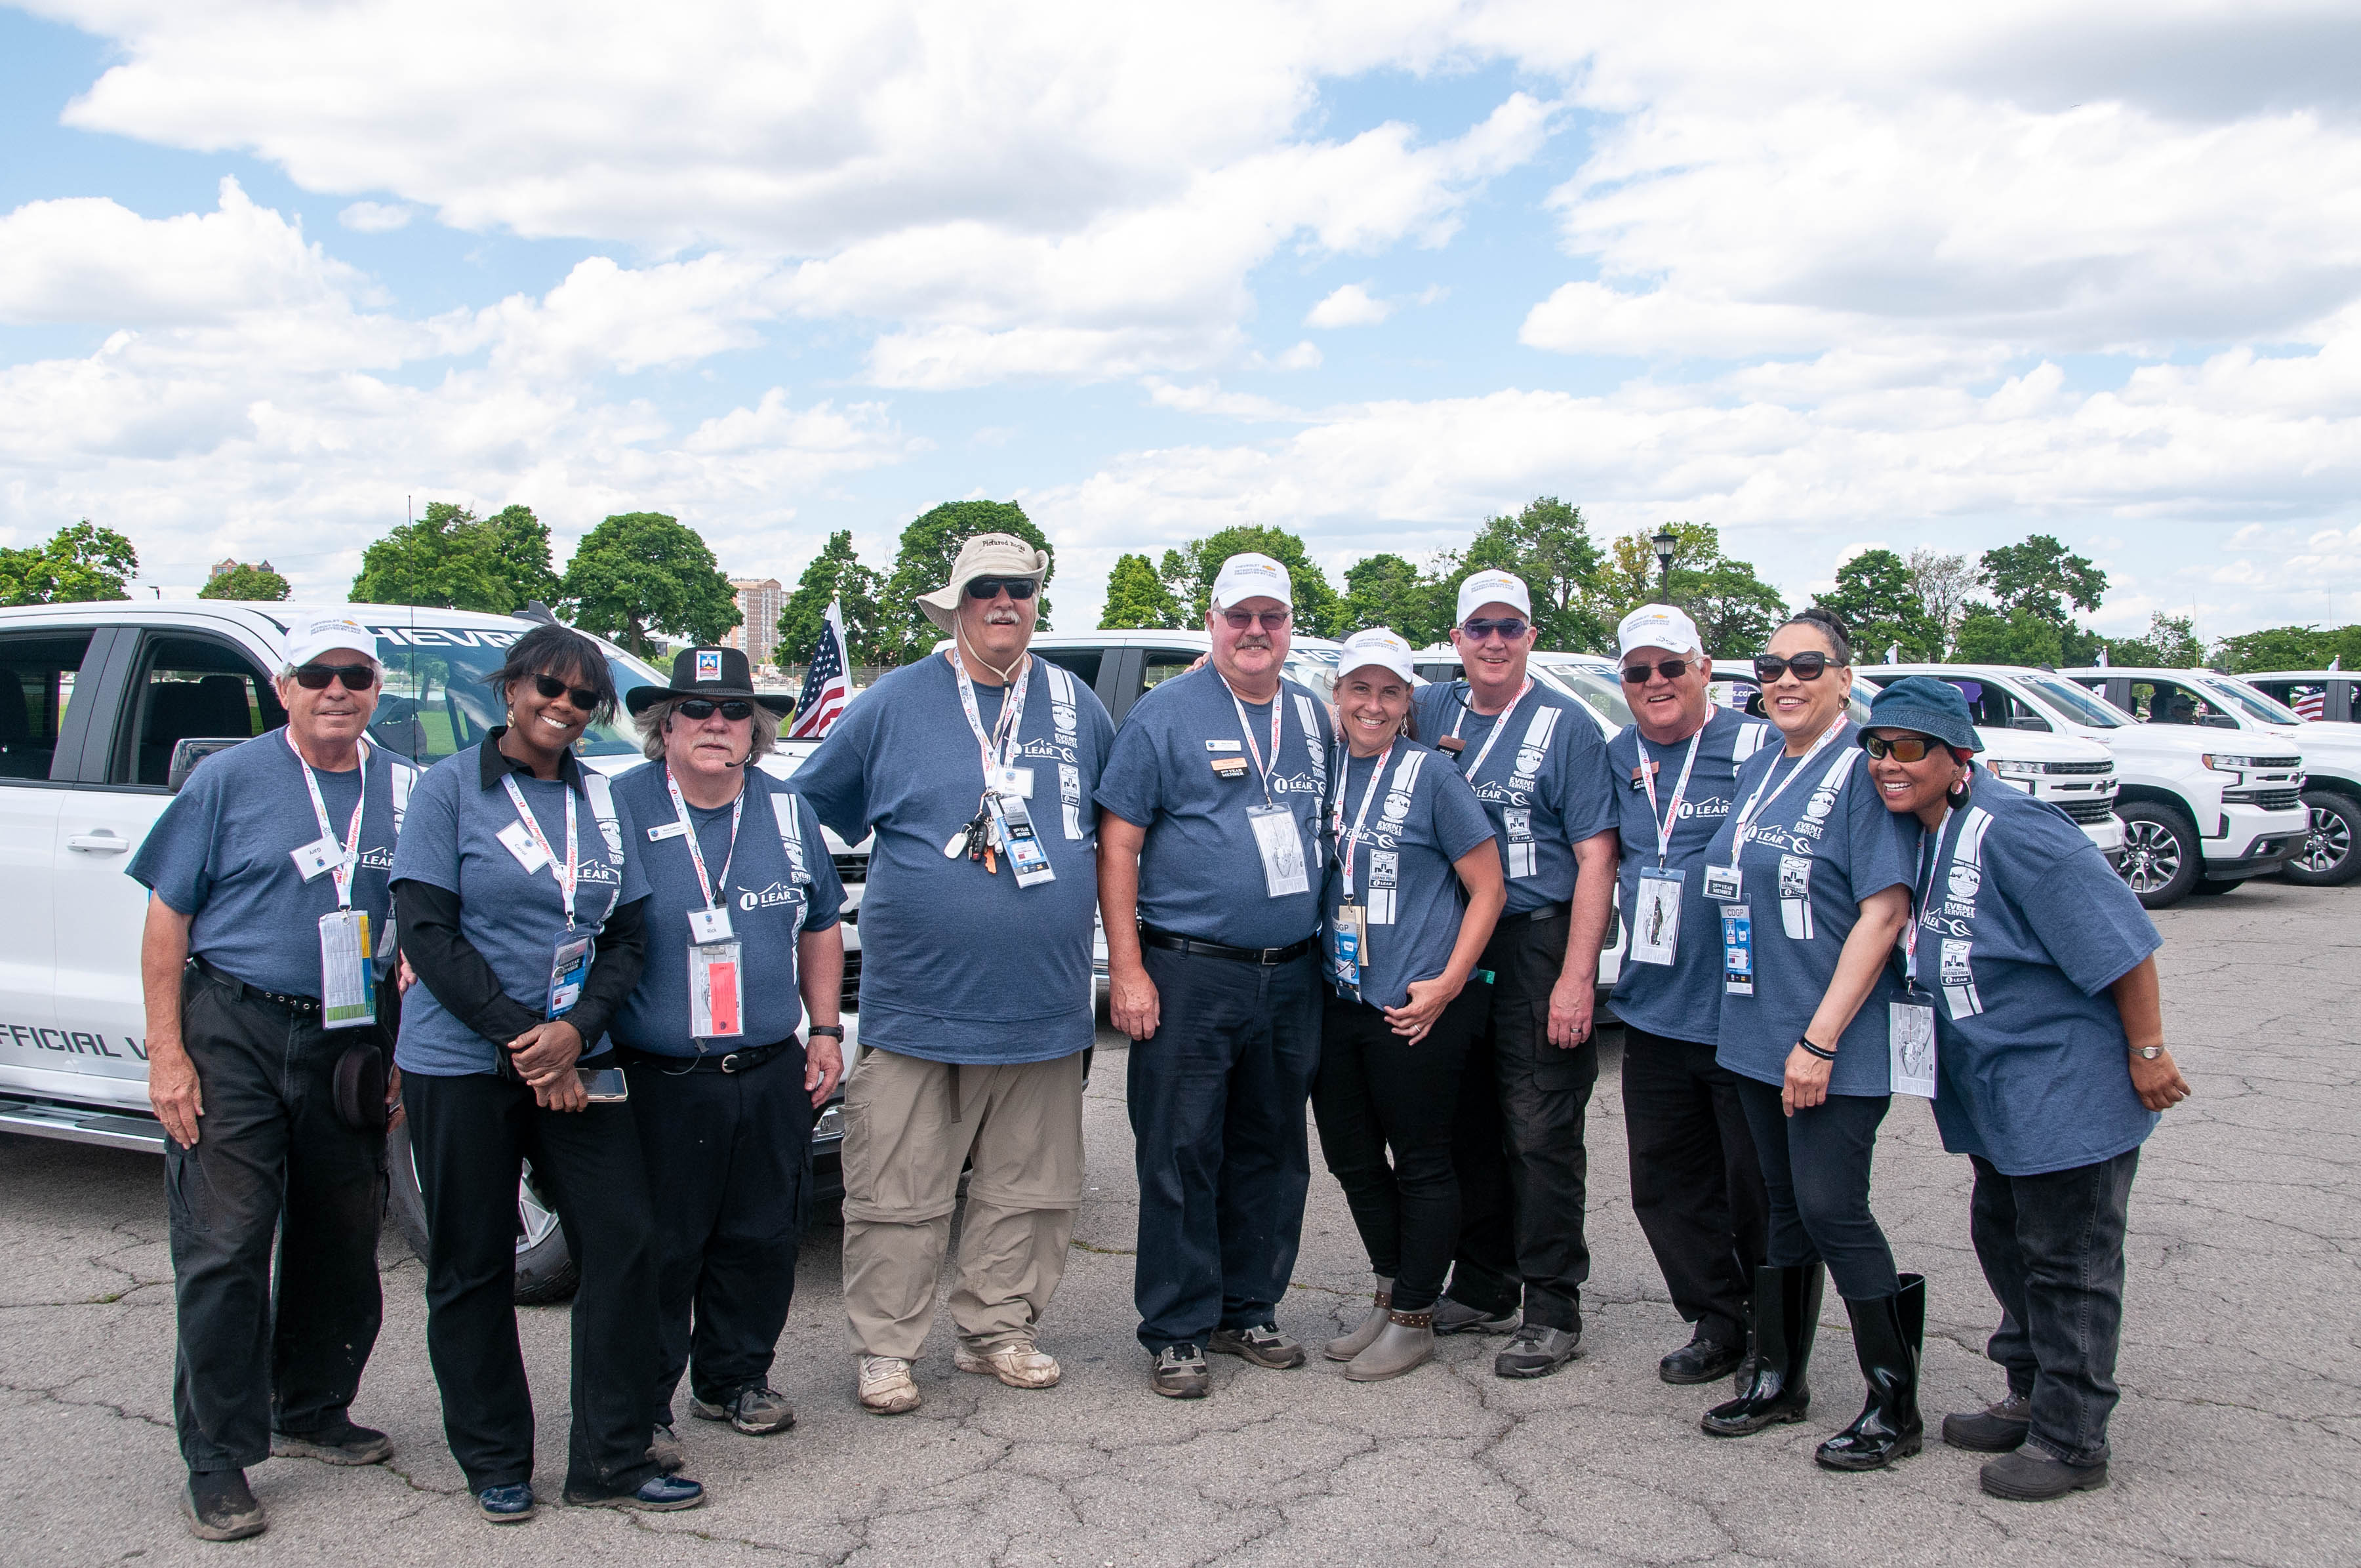 Volunteers Needed for the 2020 Chevrolet Detroit Grand Prix presented by Lear